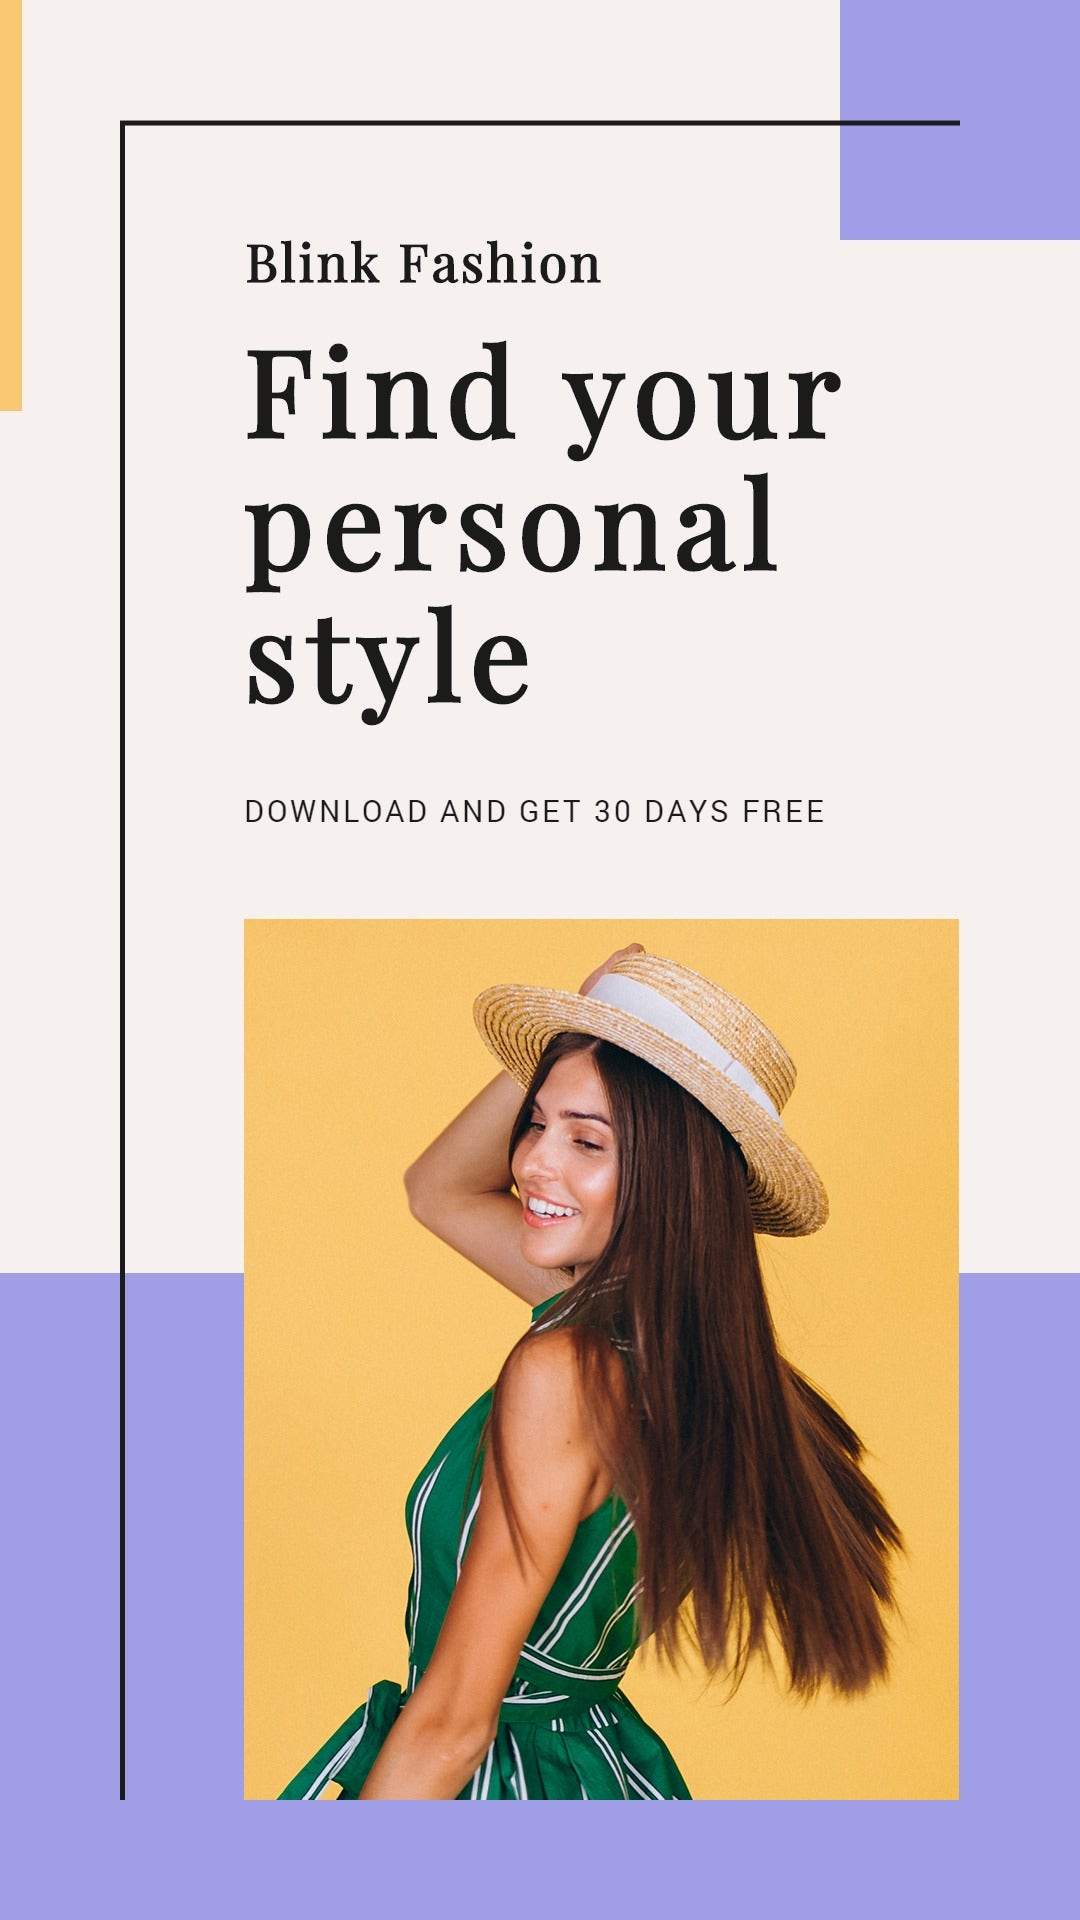 Fashion Brands App Promotion Whatsapp Post Template